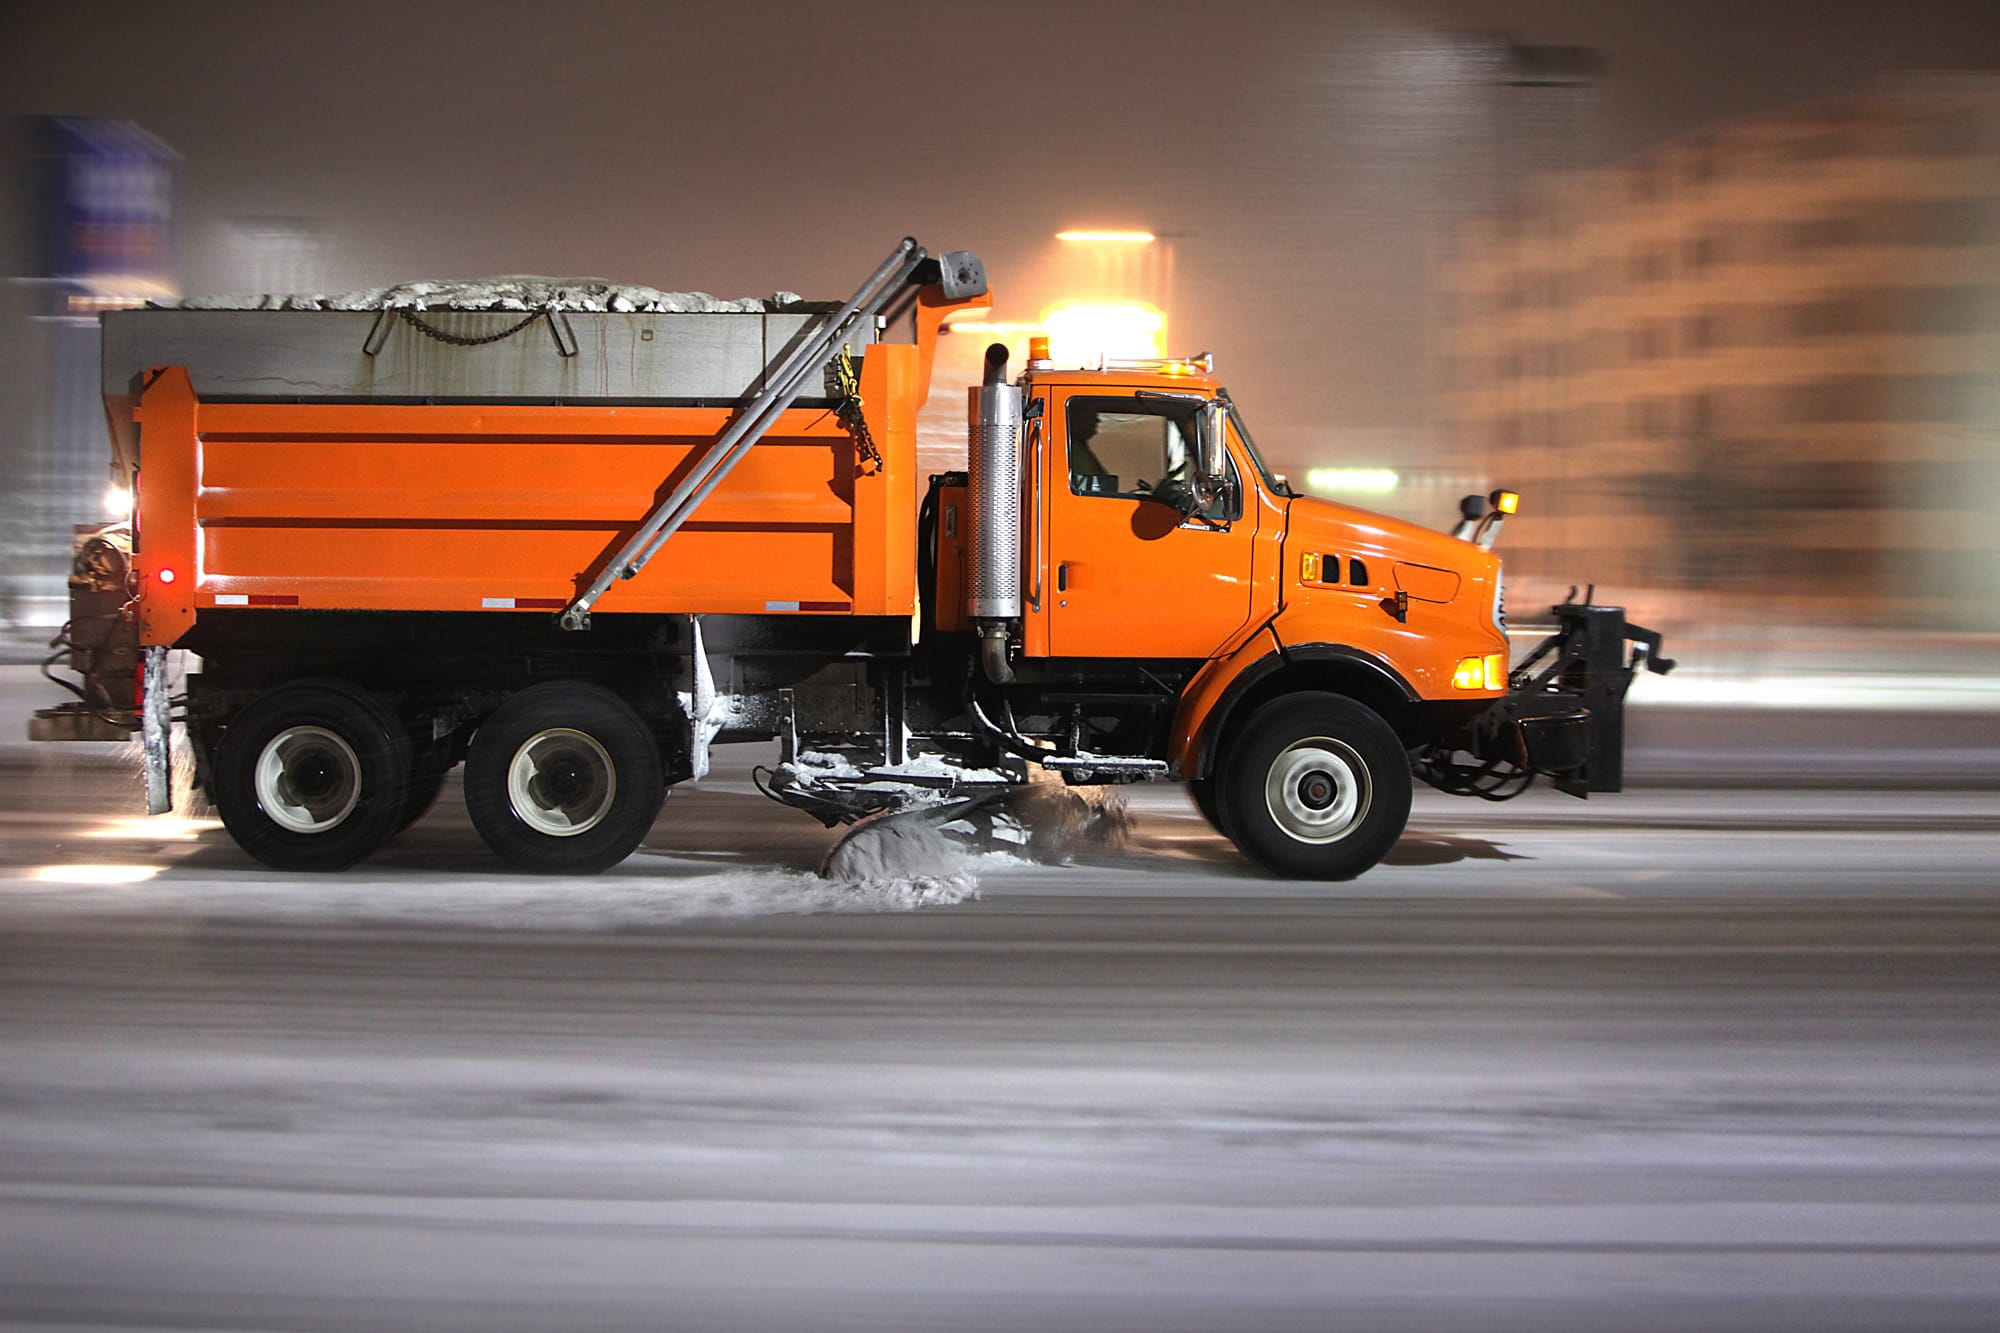 truck plowing snow from roads